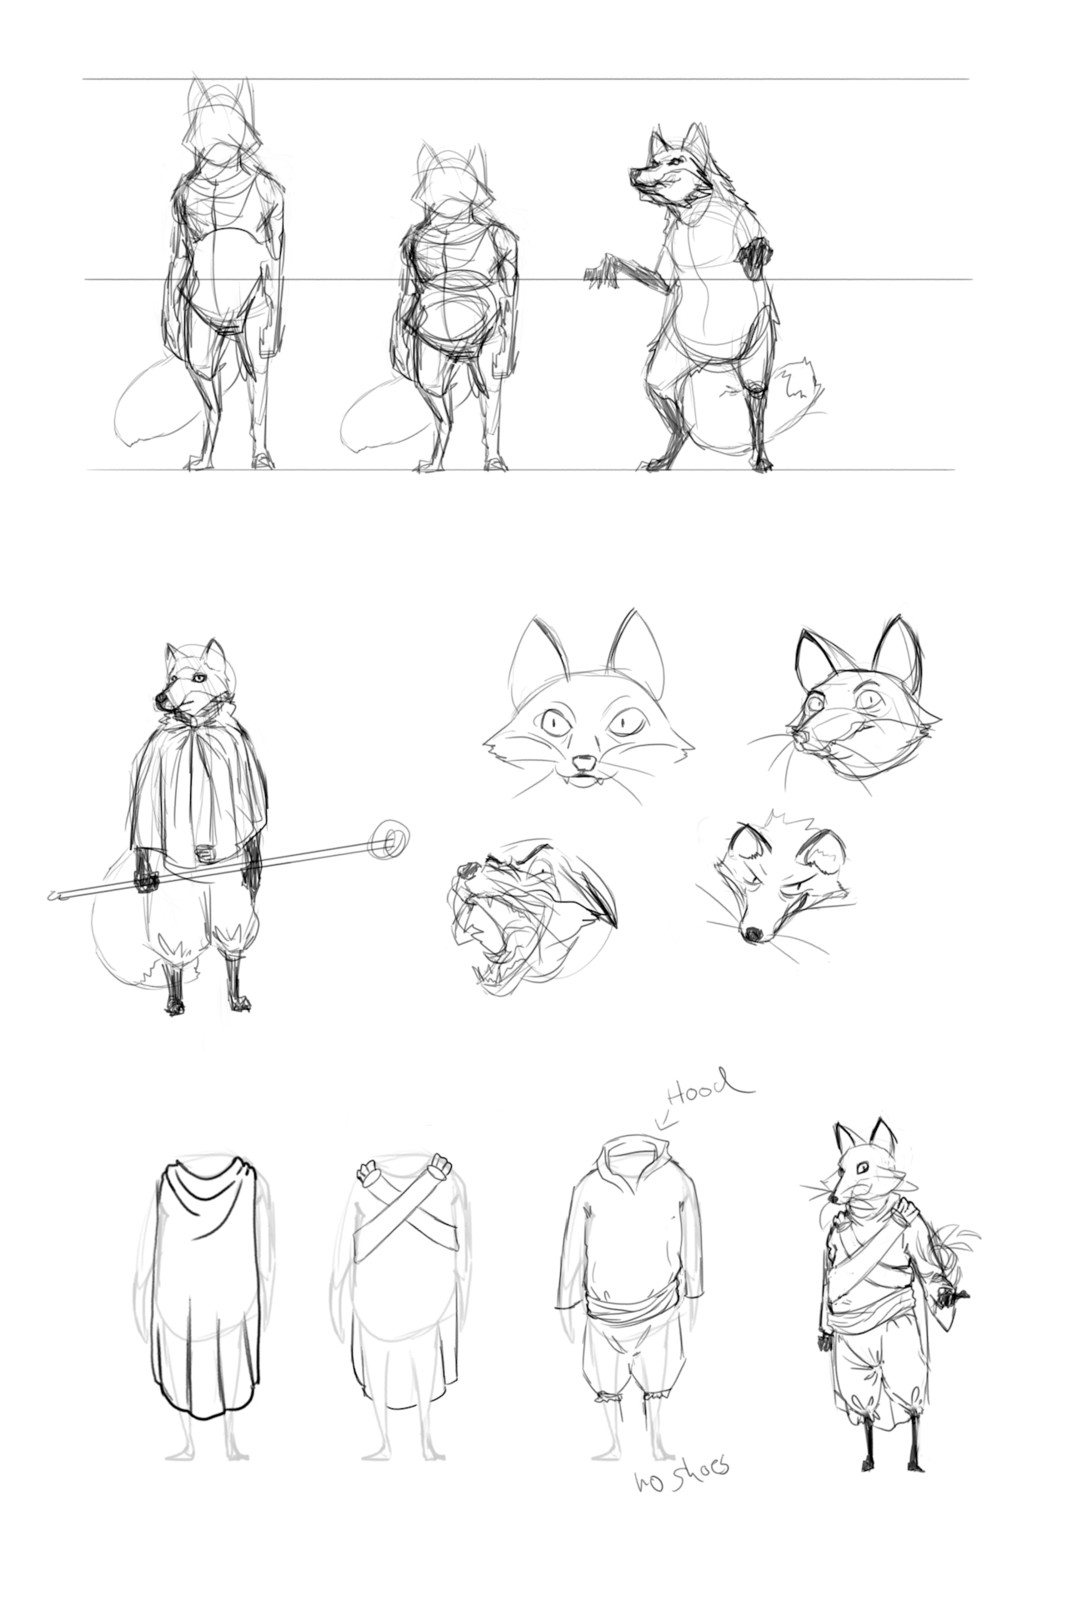 Here I tried to determin the overall body shape and possible clothing choice. None of them made it into the final concept.